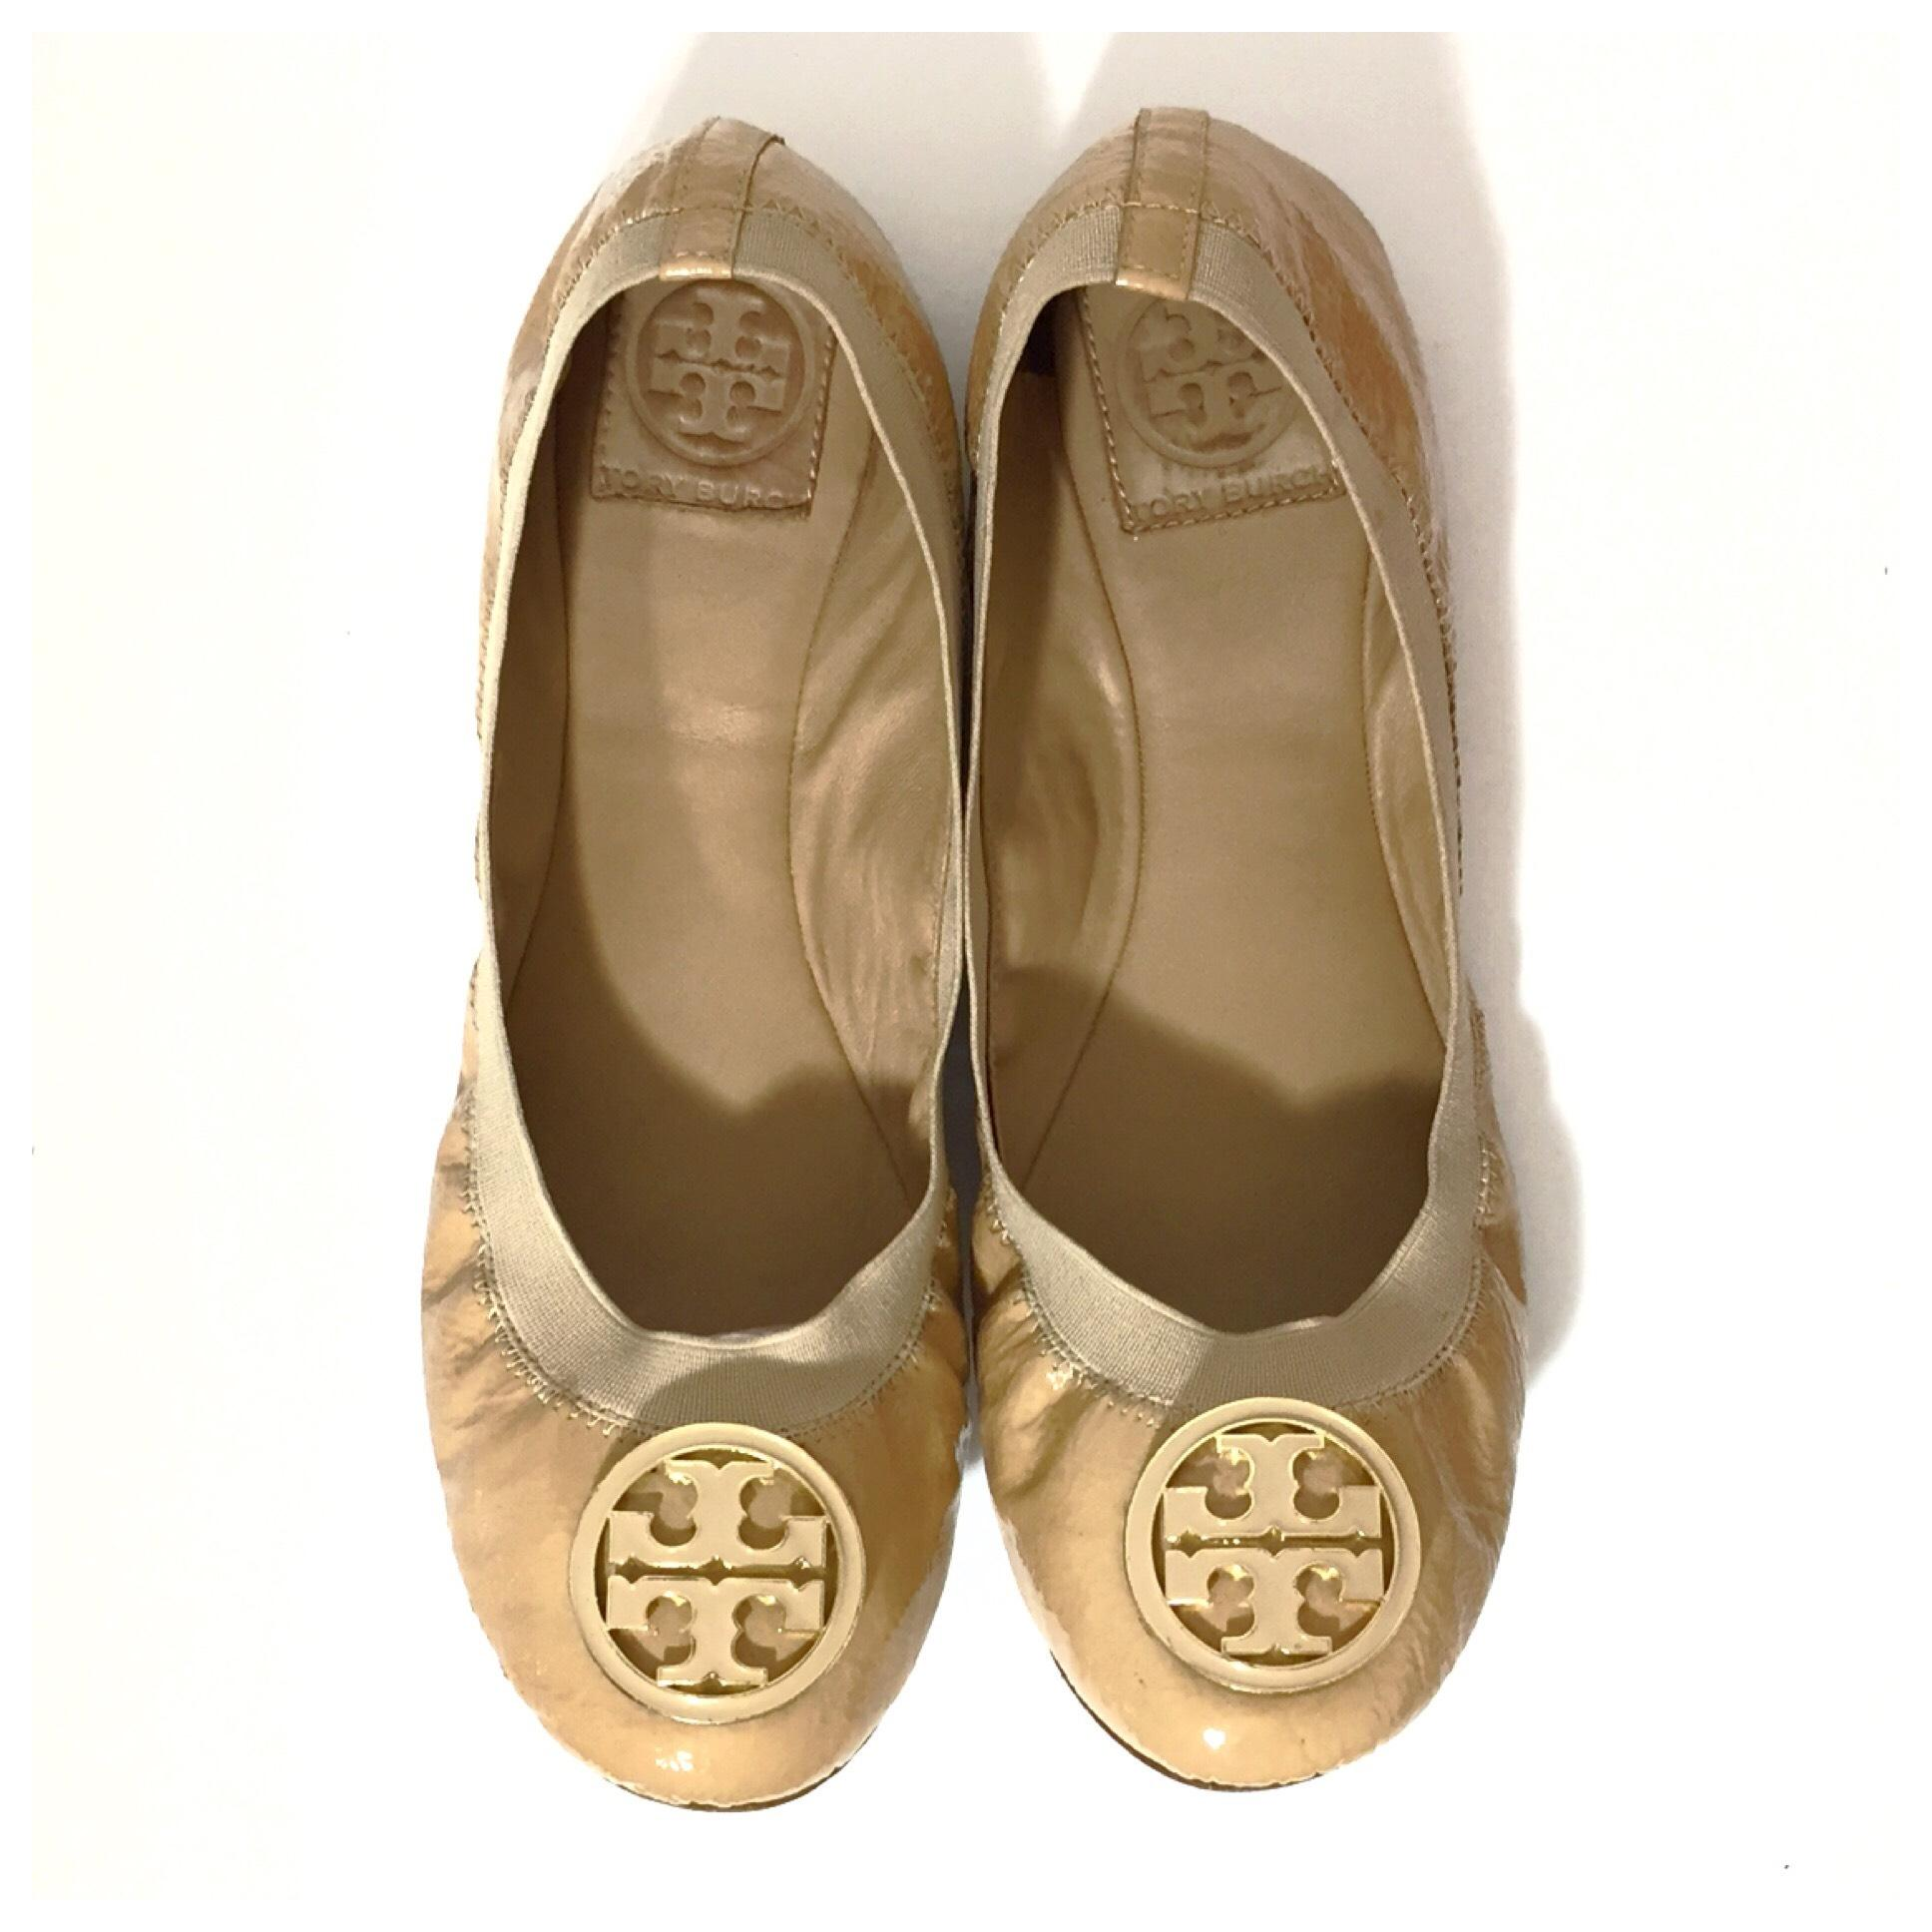 2998eda66 ... Tory Burch Camellia Camellia Camellia Pink Caroline Patent Leather  Ballet Gold Logo Flats Size US 10 ...